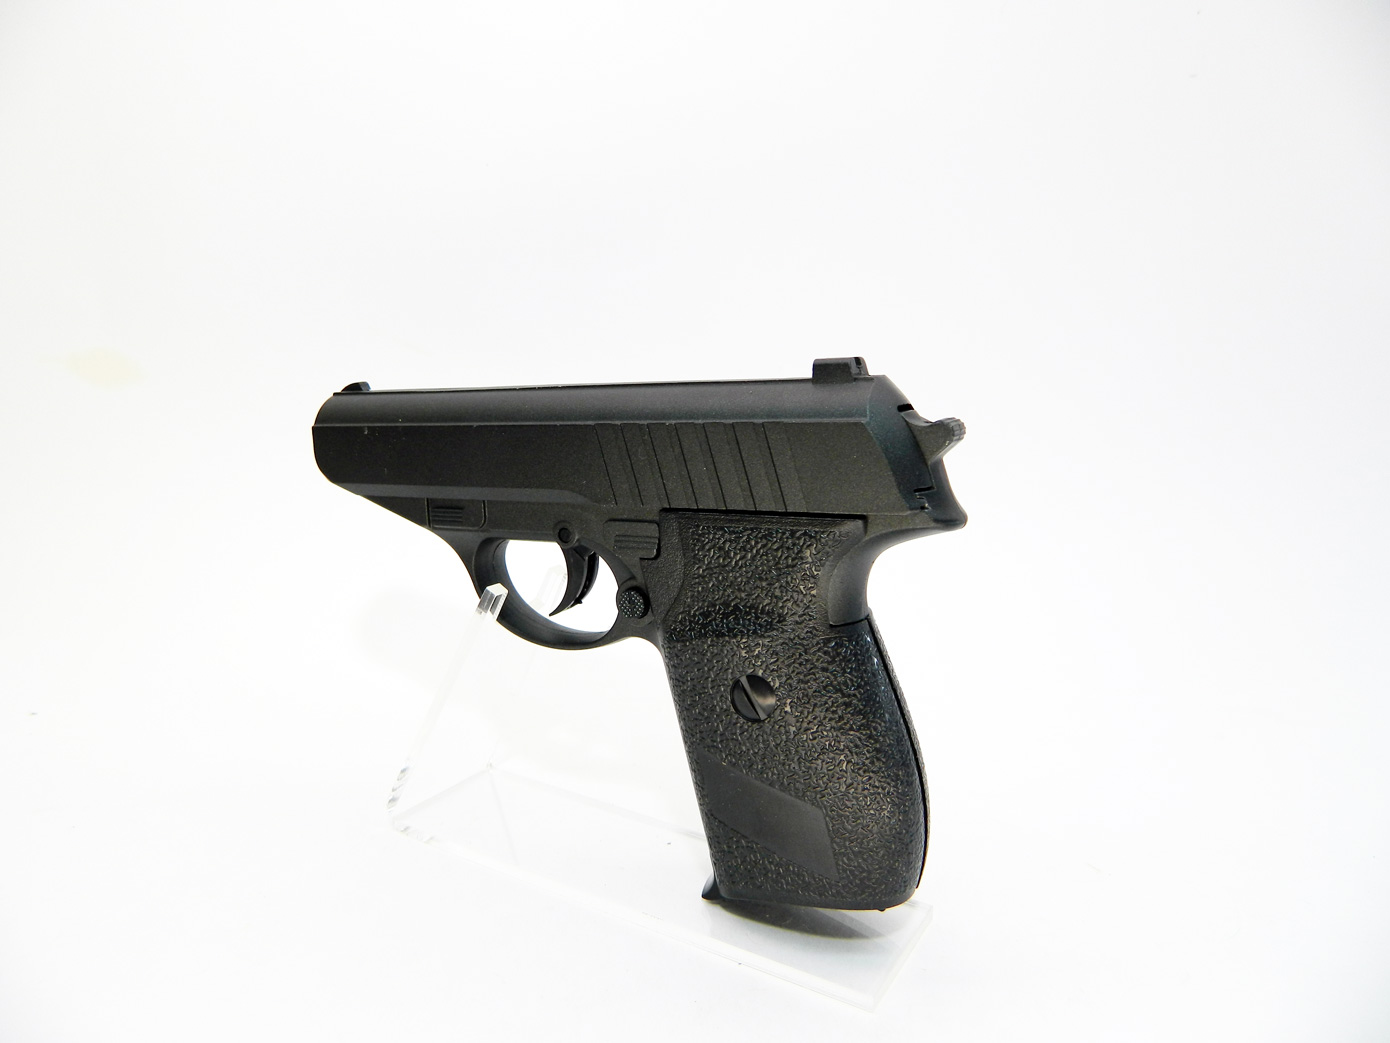 Walther PPK масштаб 1:1 изображение 0